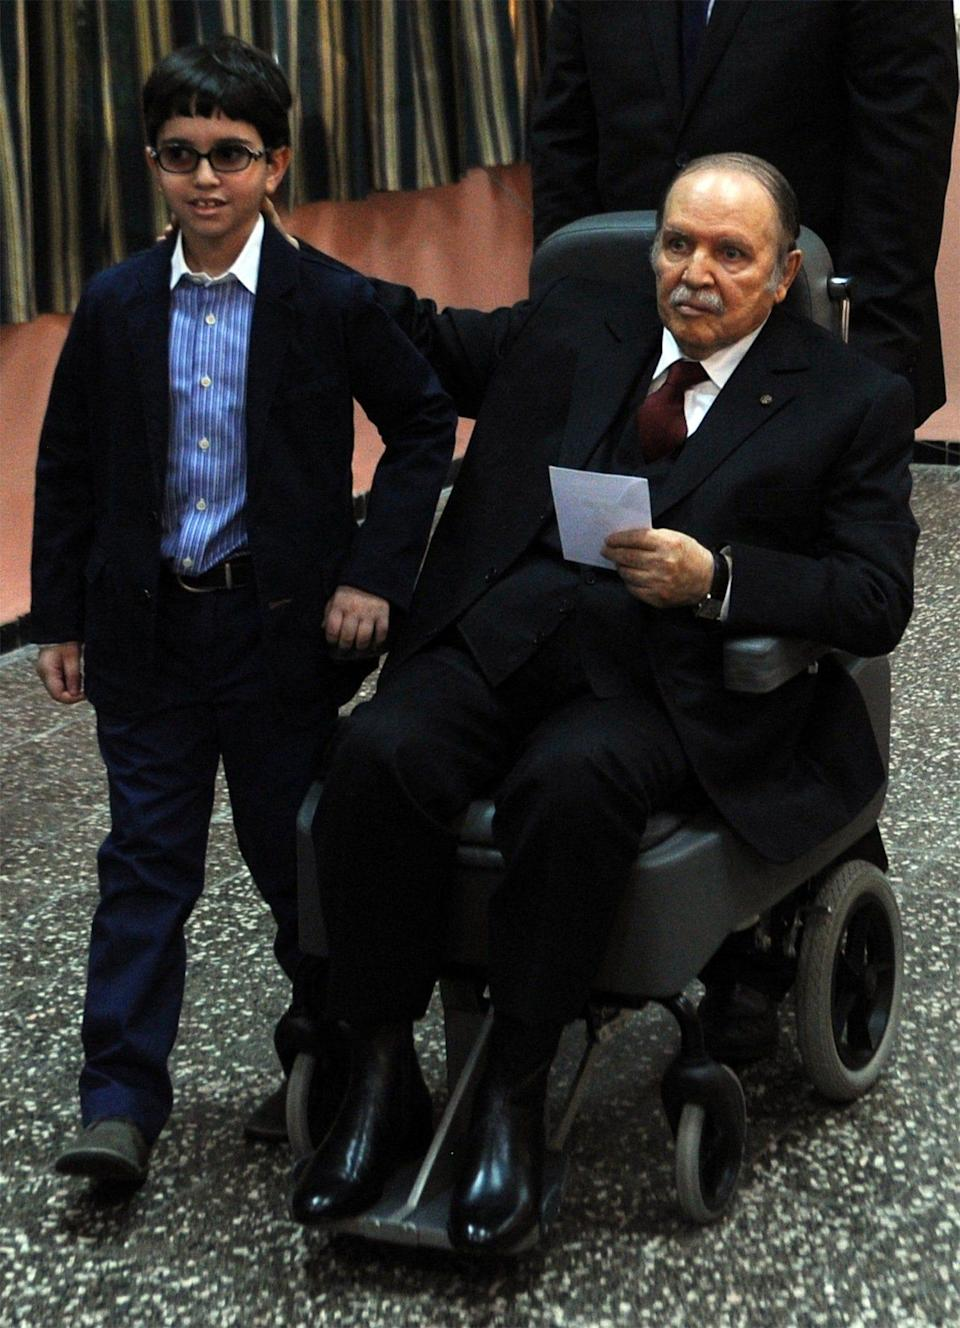 President Bouteflika was ailing in the later years of his rule: here he is pushed in a wheelchair next to his nephew before casting his ballot in Algiers, 2014 - FAROUK BATICHE/AFP via Getty Images